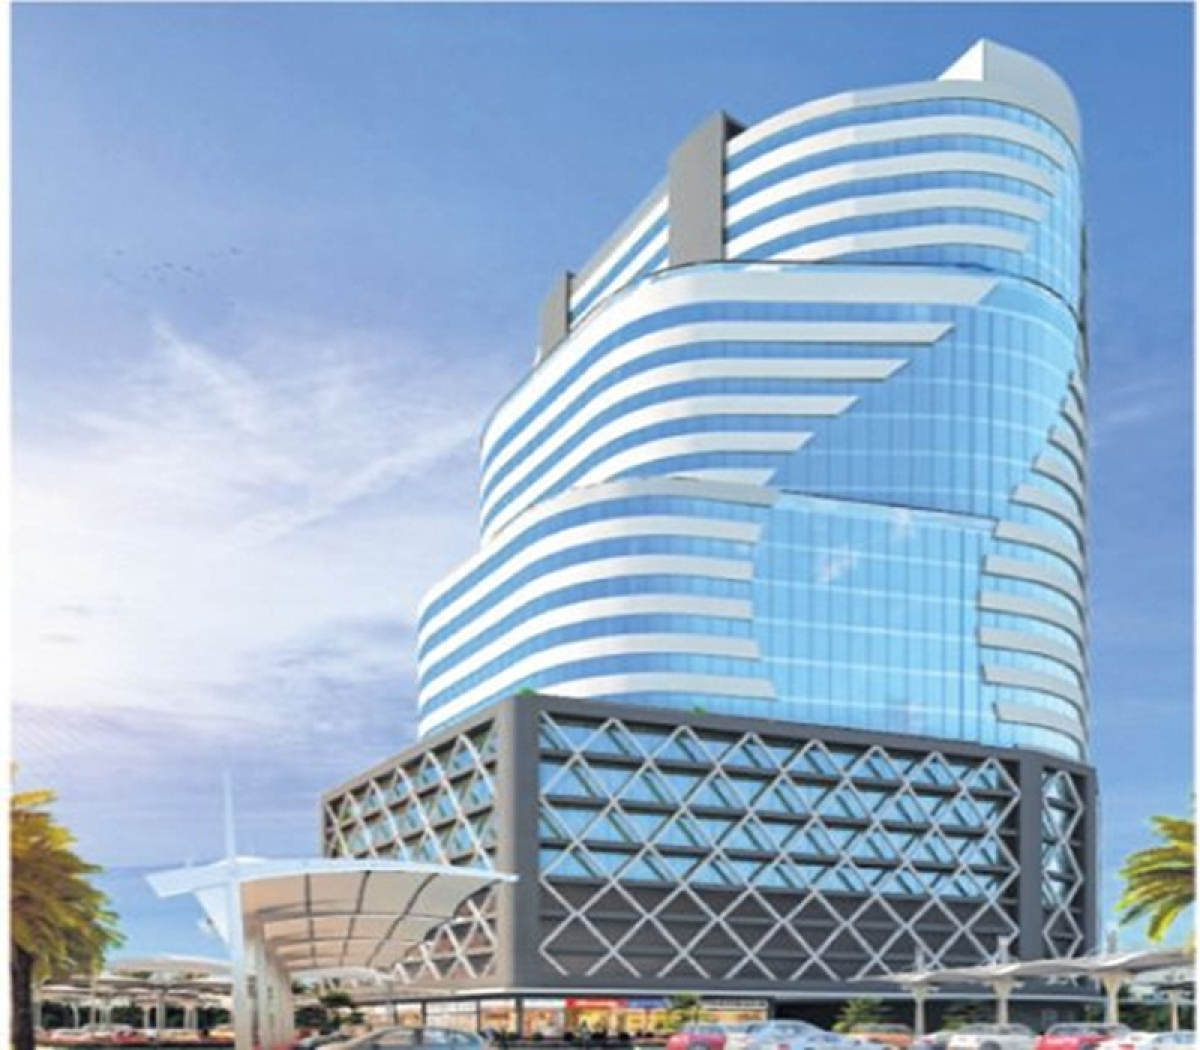 Indore: IDA pulls plug on ambitious highrise project for now